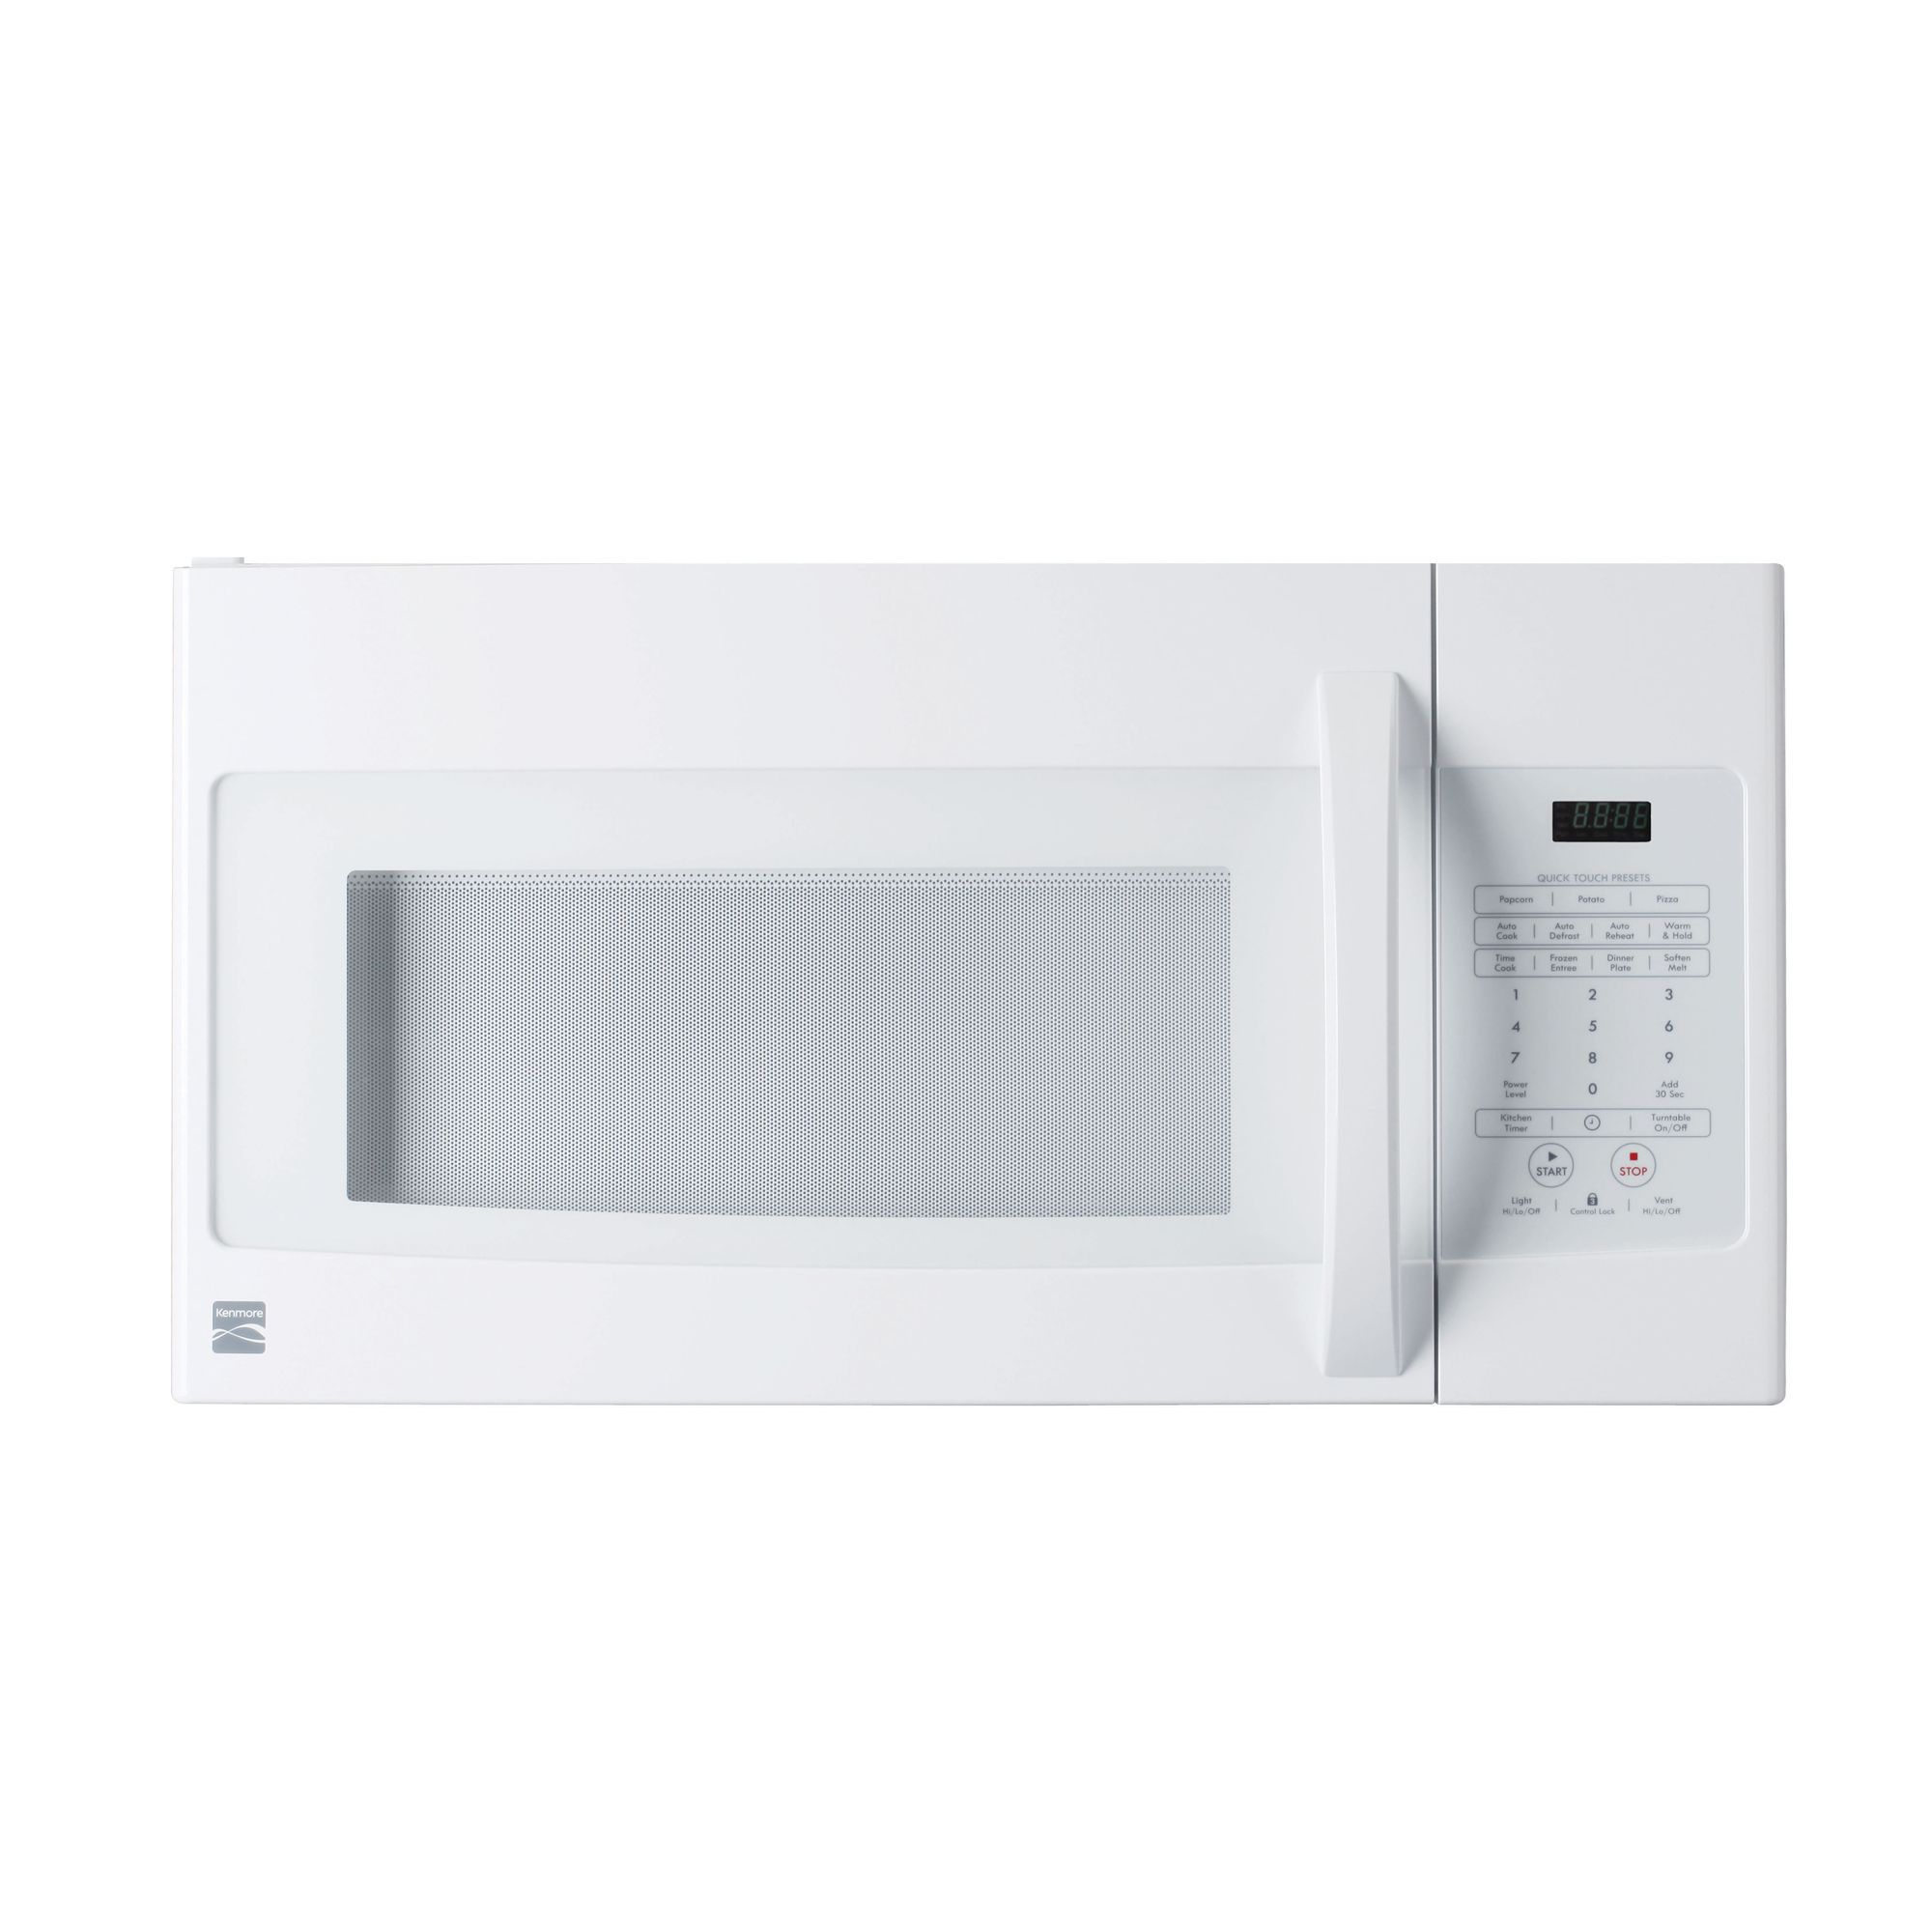 Kenmore Over The Range Microwave 1 6 Cu Ft 85032 Sears Over